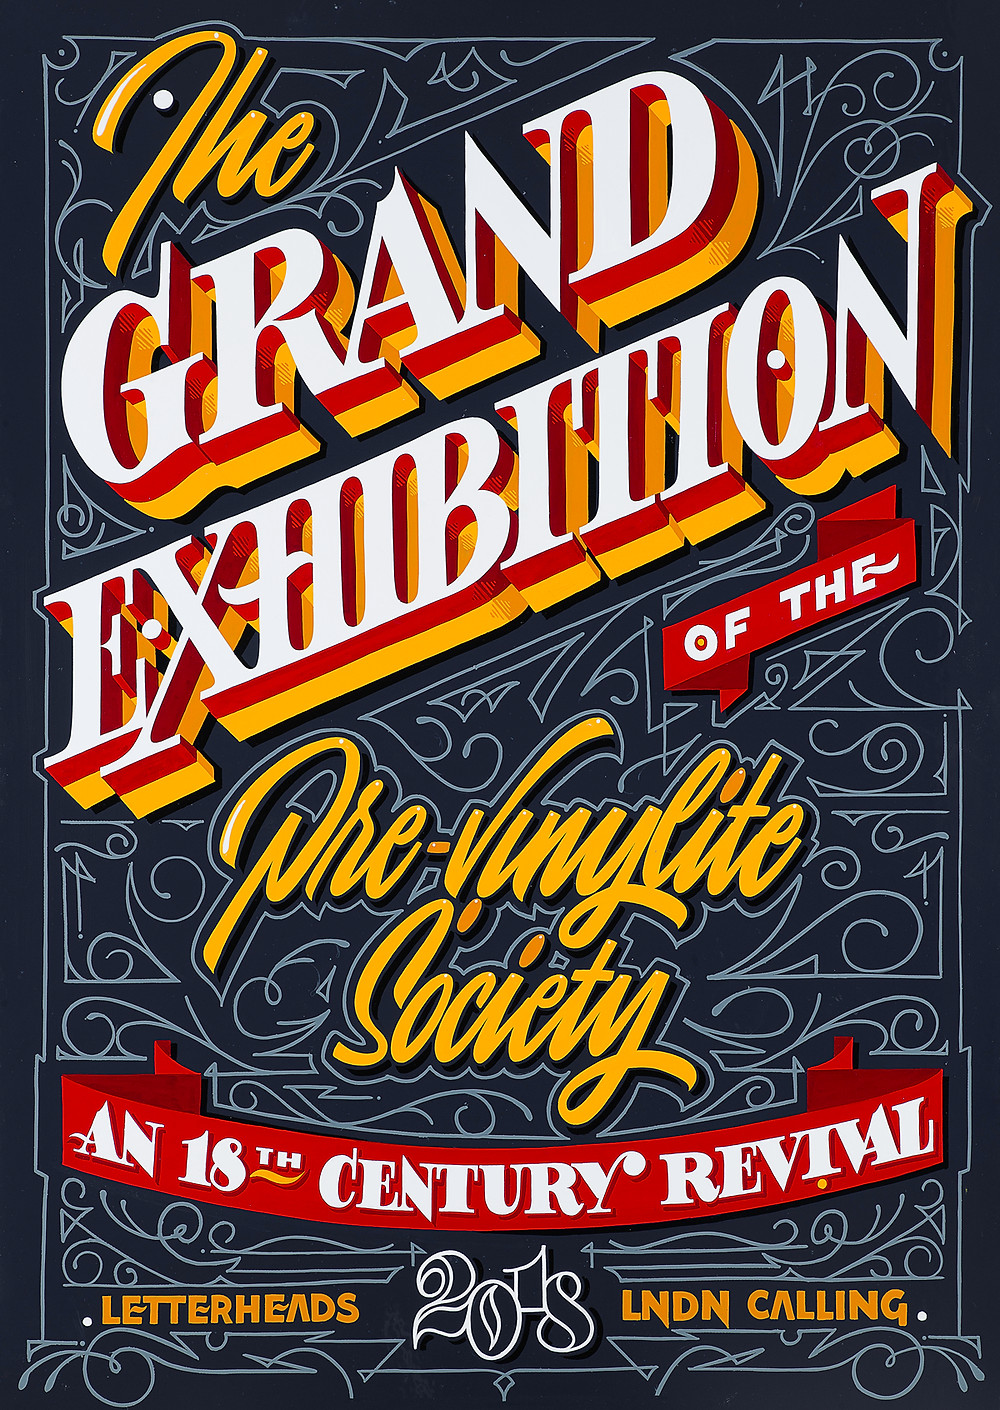 The Grand Exhibition